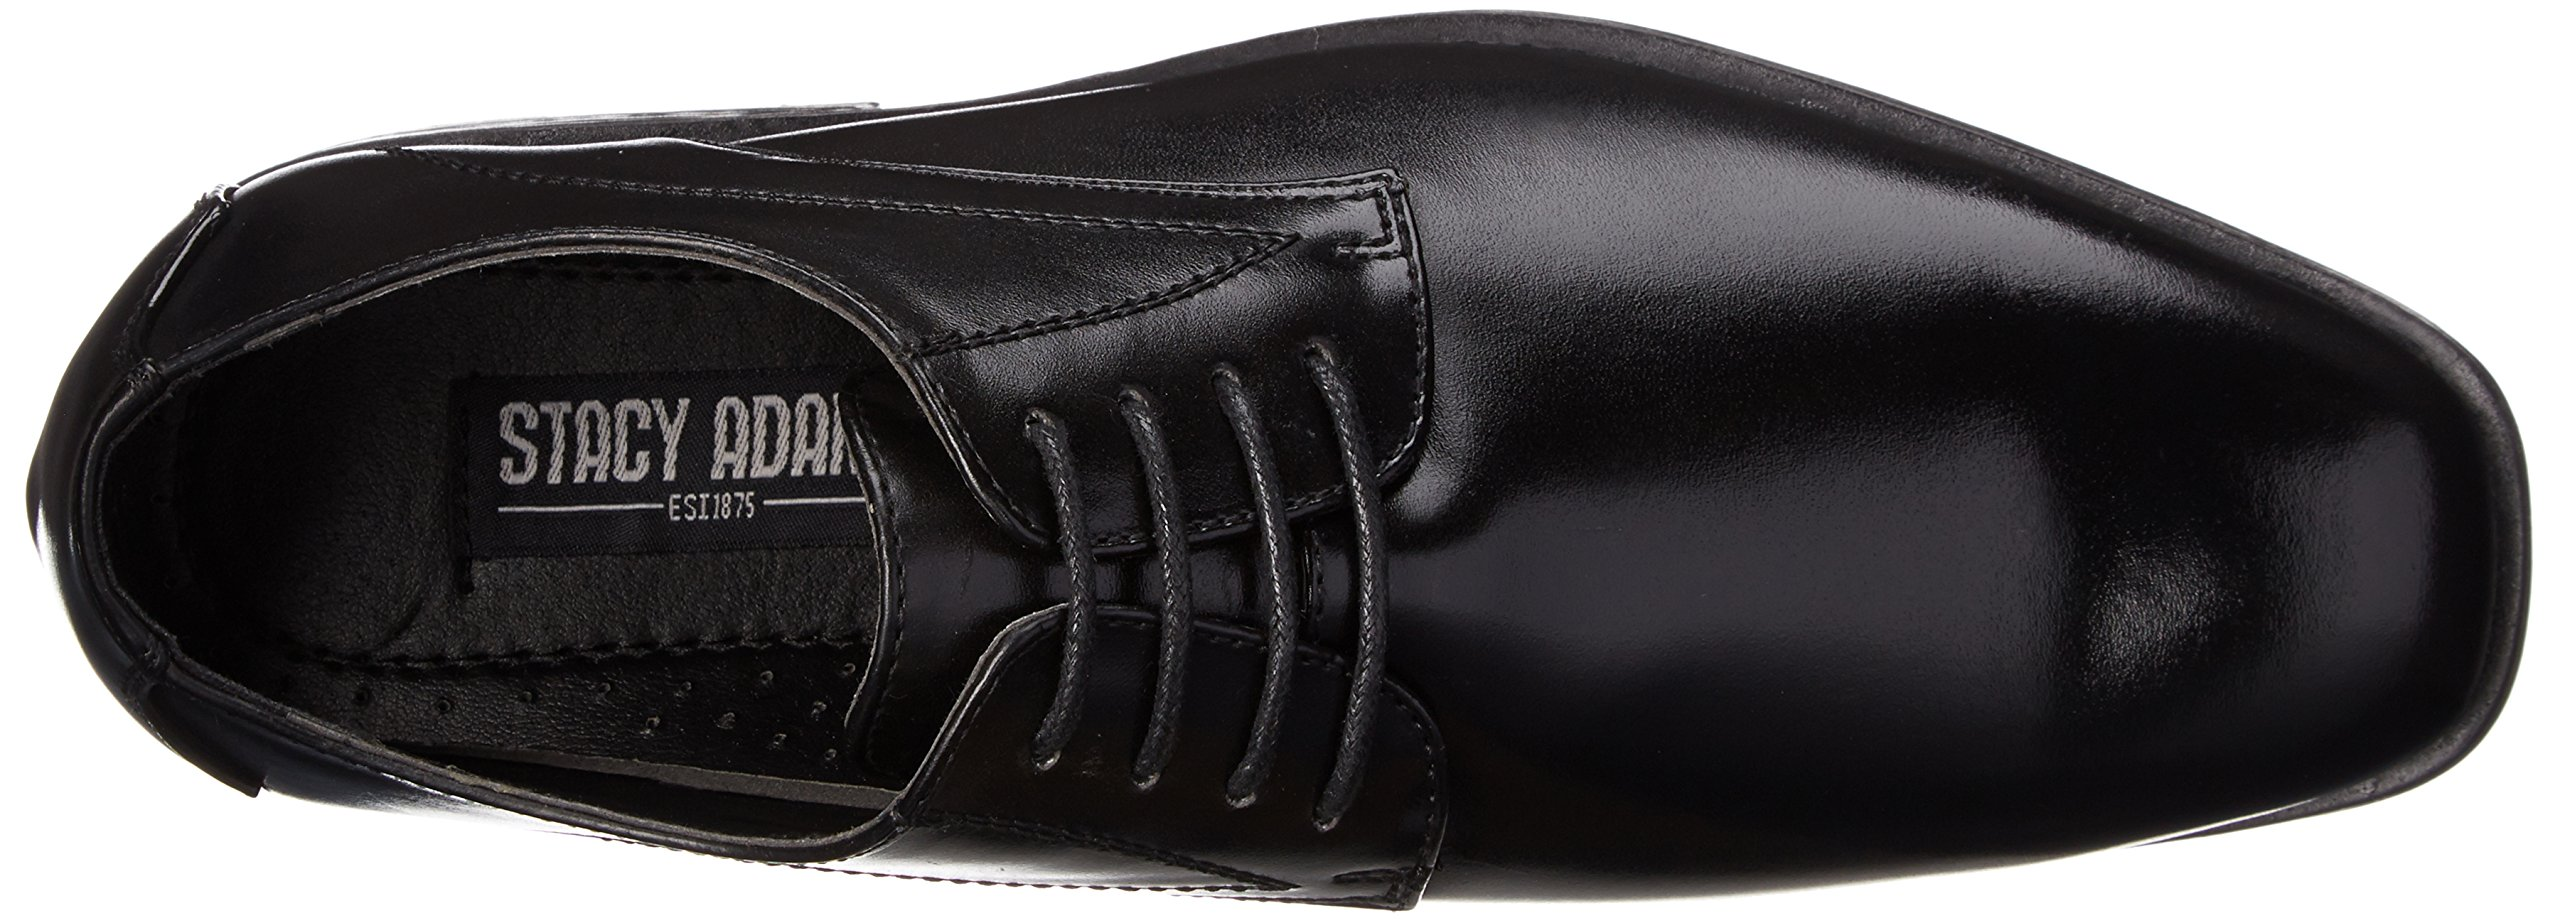 Stacy Adams Carmichael Plain Toe Lace-up Uniform Oxford Dress Shoe (Little Kid/Big Kid),Black,4 M US Big Kid by STACY ADAMS (Image #8)